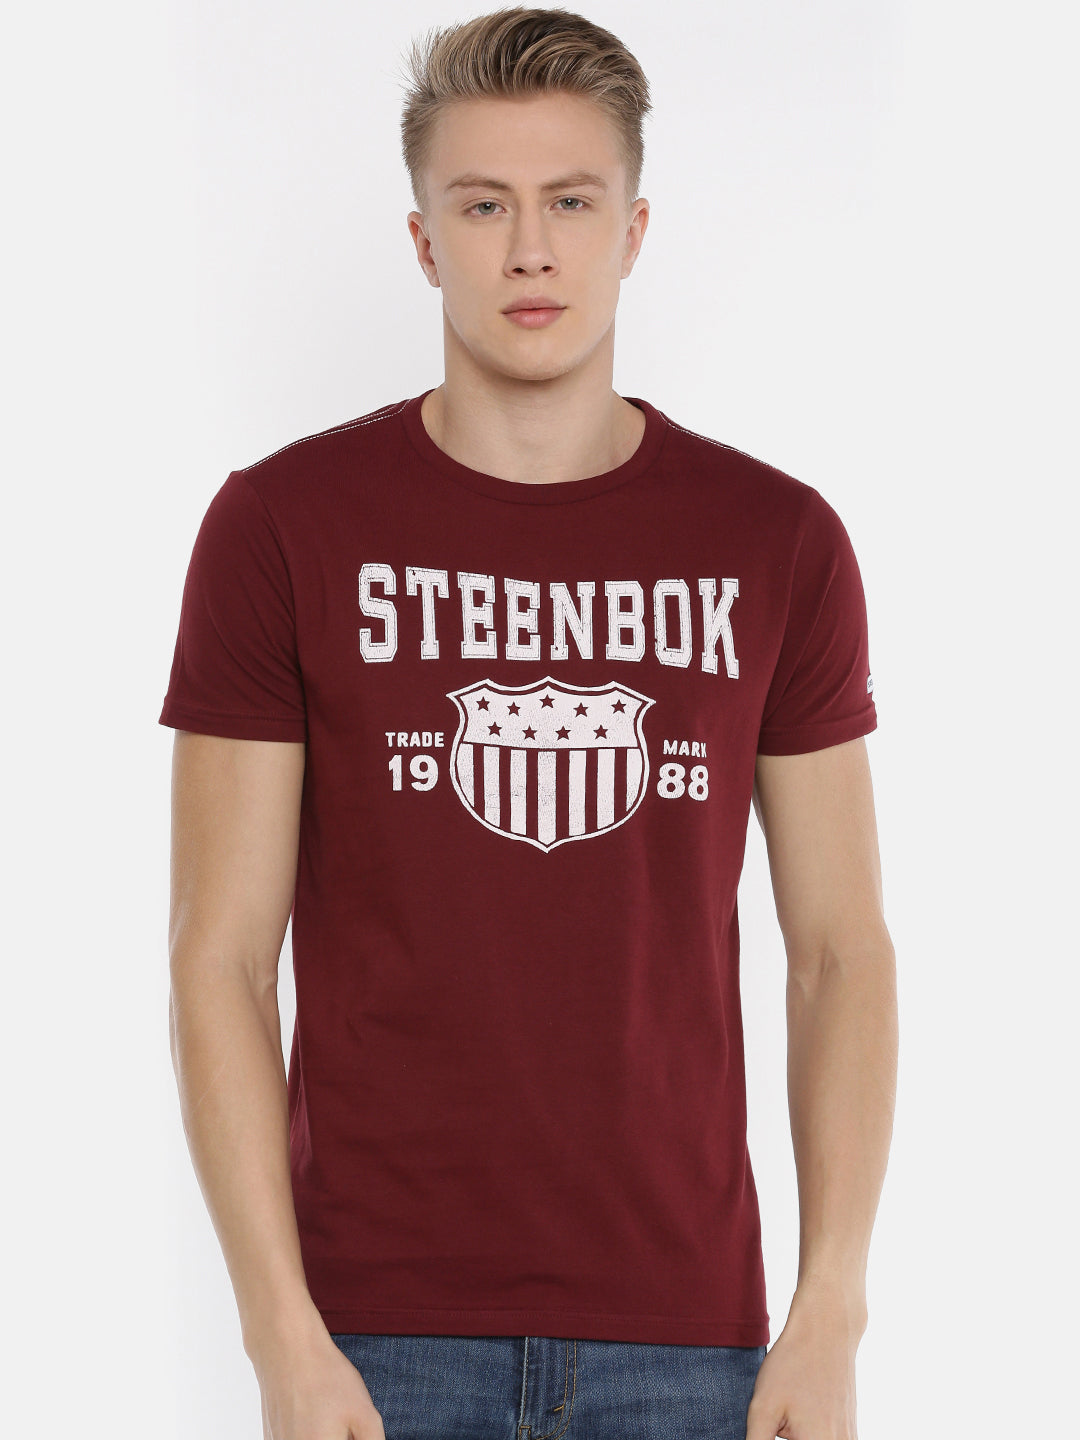 Men's Maroon Printed Round Neck T-shirt